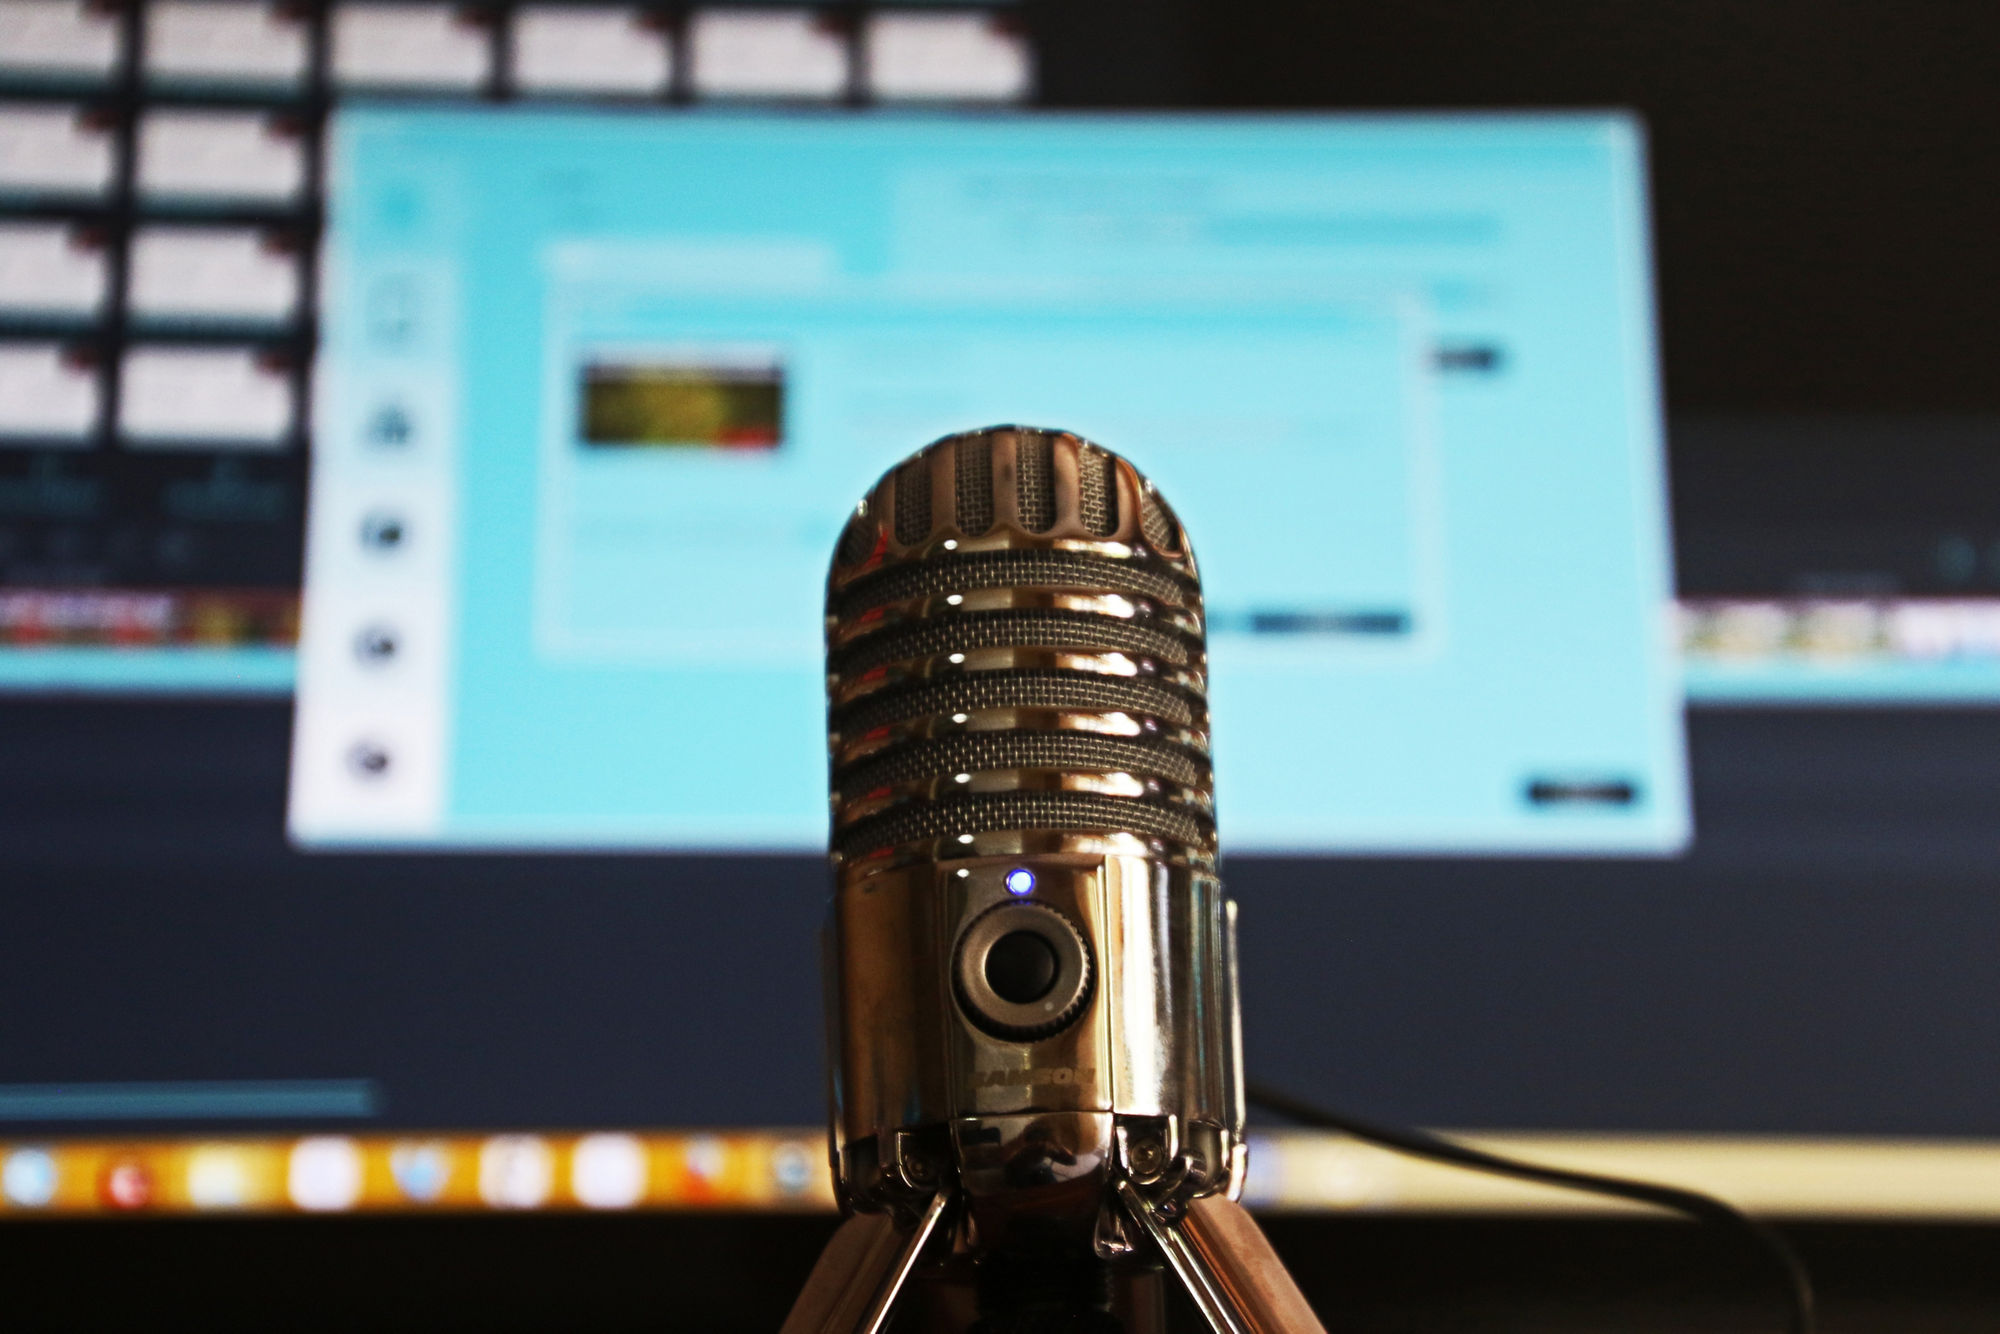 So you want to get into podcasting...